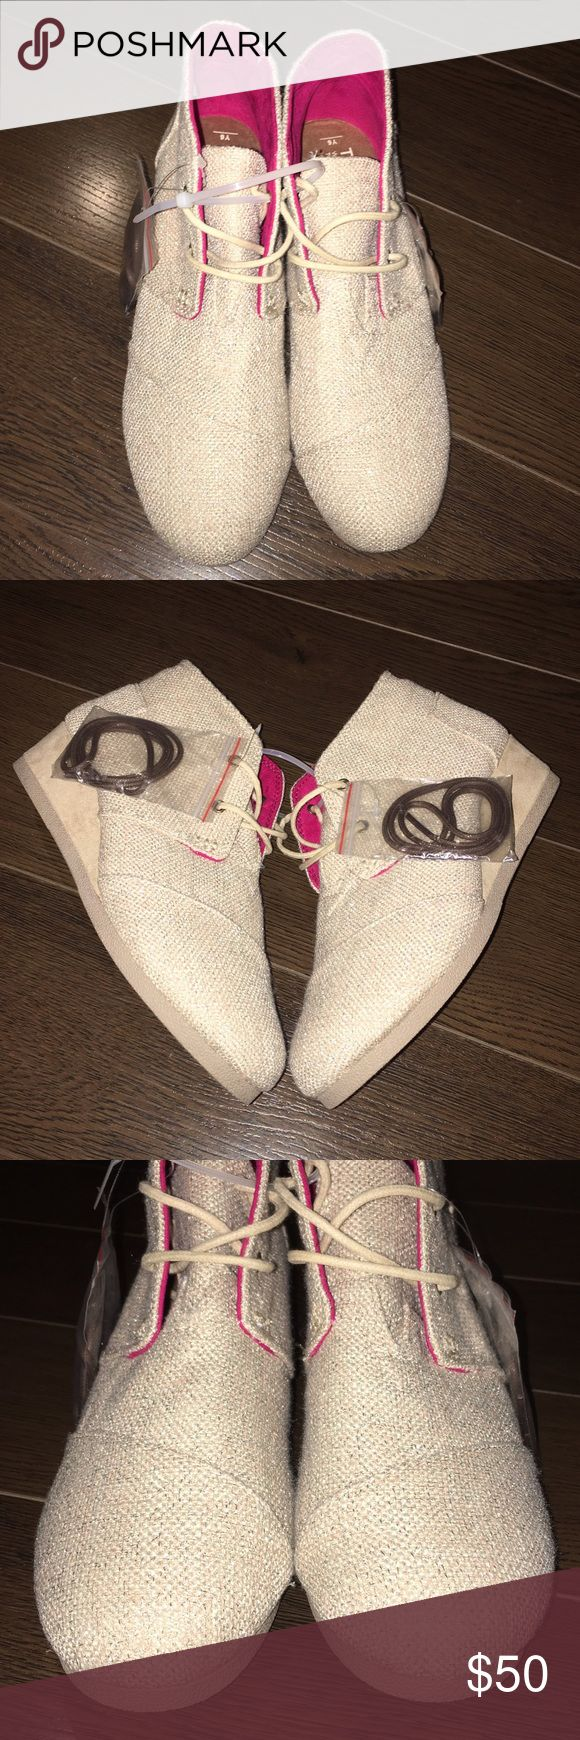 """TOMS Desert Wedge Booties Metallic Gold Burlap Brand new without box, never been worn.  Size 6Y but would also fit size 8 Women.  Comes with additional pair of darker laces. * Gold Metallic Burlap, mid tip silhouette  * Round cap toe with 2 eyelets lace front * Soft texture lining offers a comfortable next-to-skin feel * Lightly cushioned footbed provides both comfort & support * Logo heel patch  * Durable rubber outsole  * Approx 1.5"""" wedge height TOMS Shoes Wedges"""